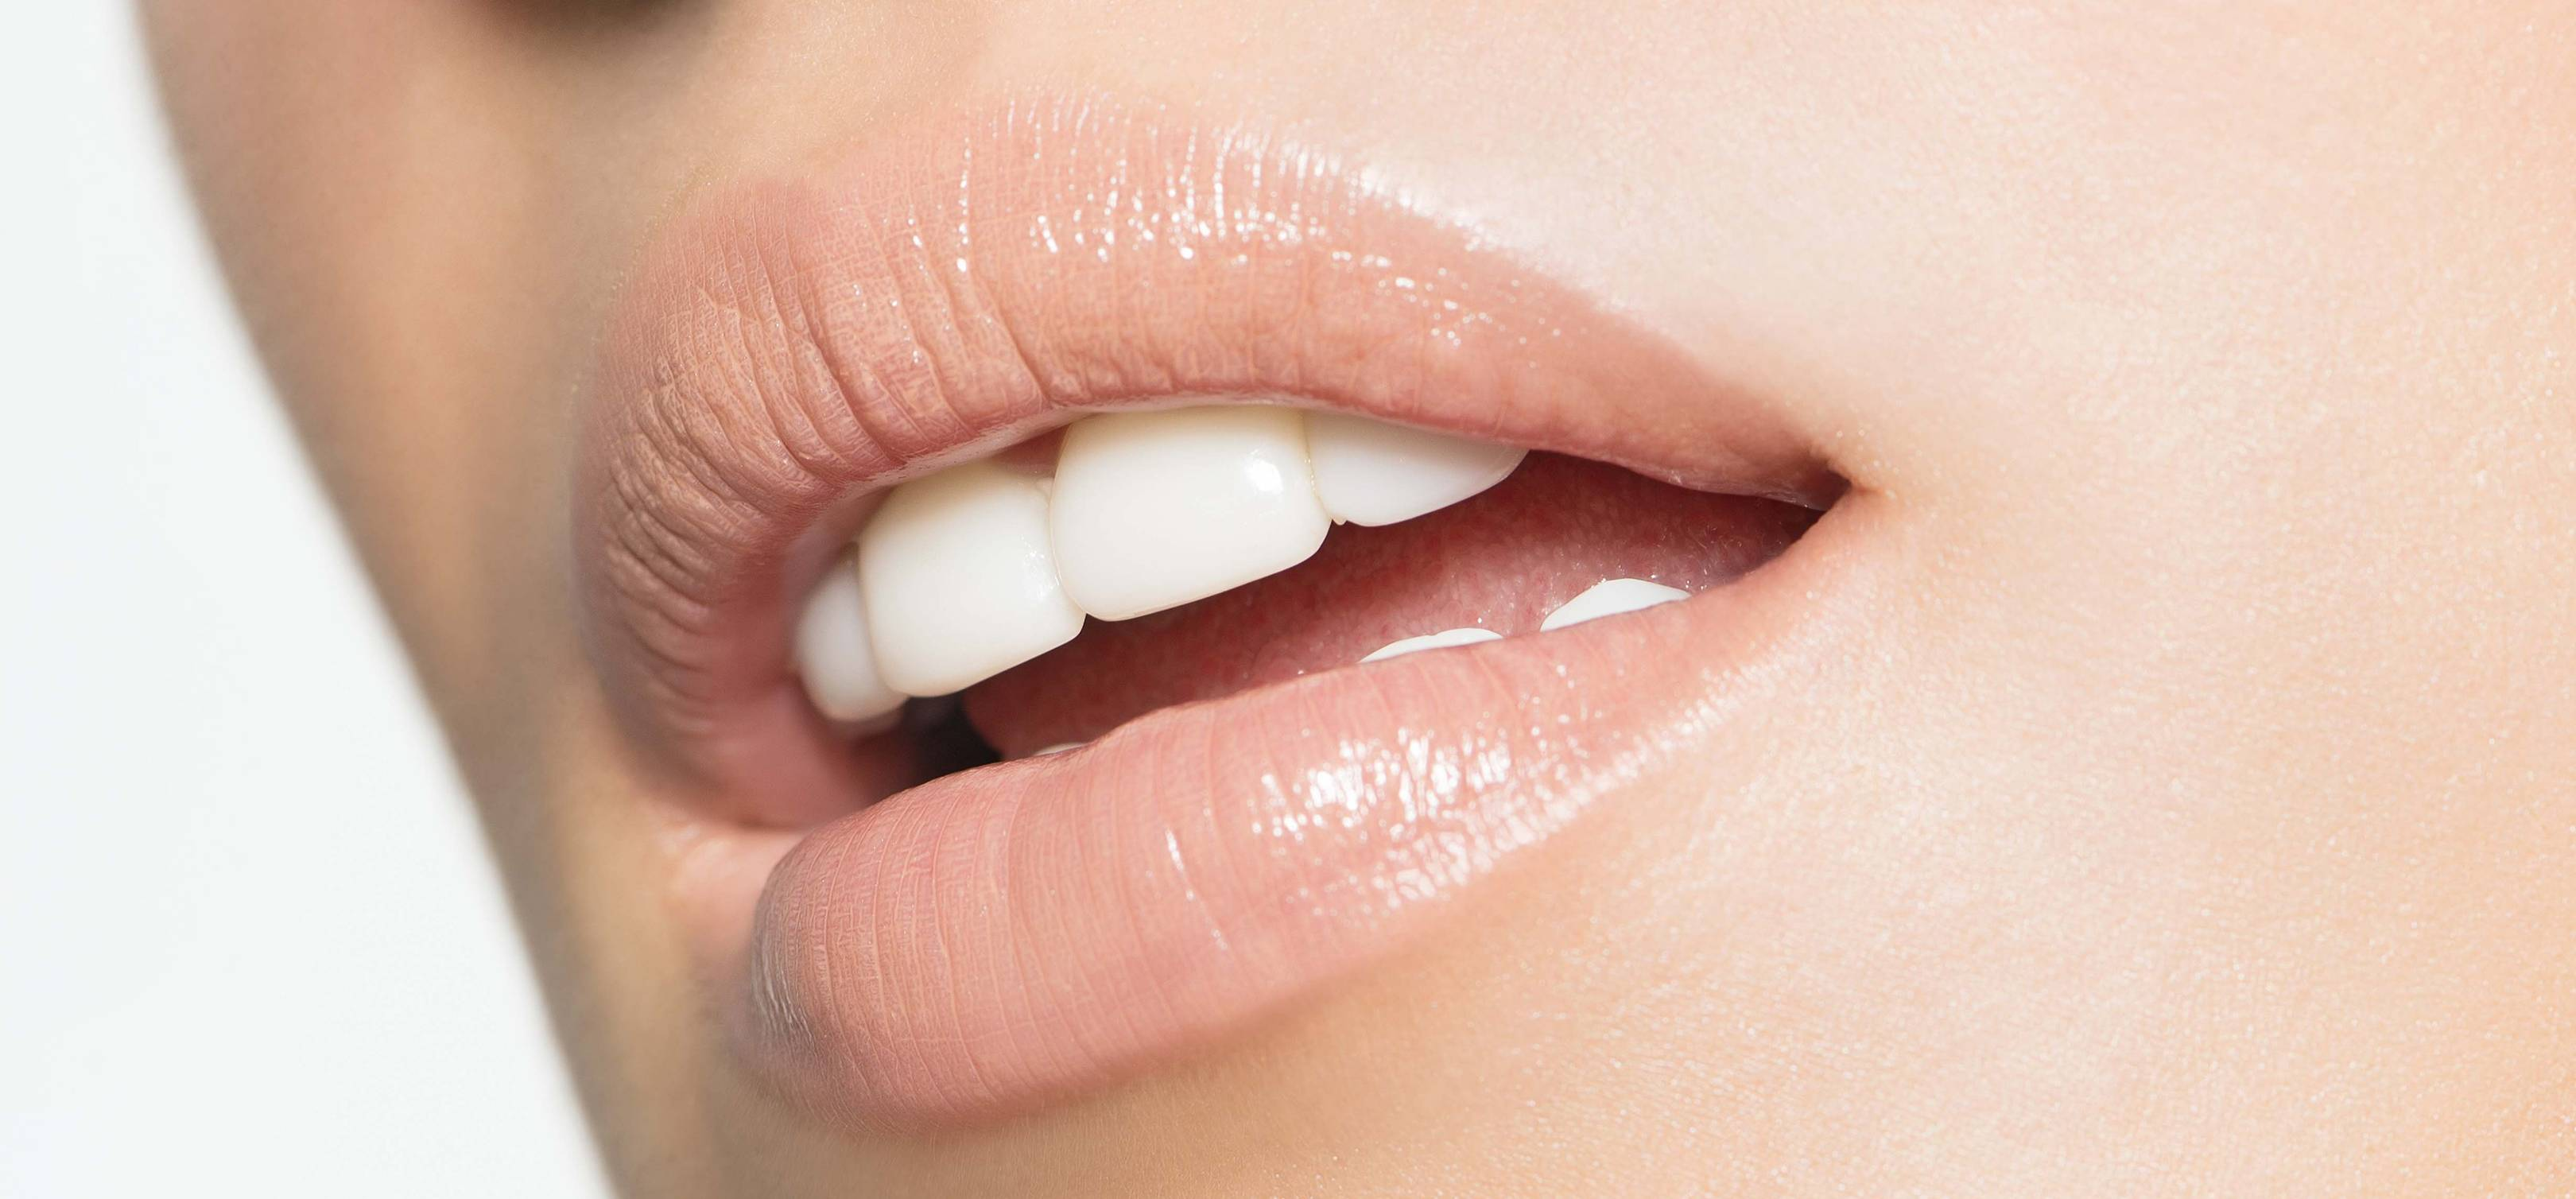 Tooth Bonding The New Alternative To Veneers Glamour Uk